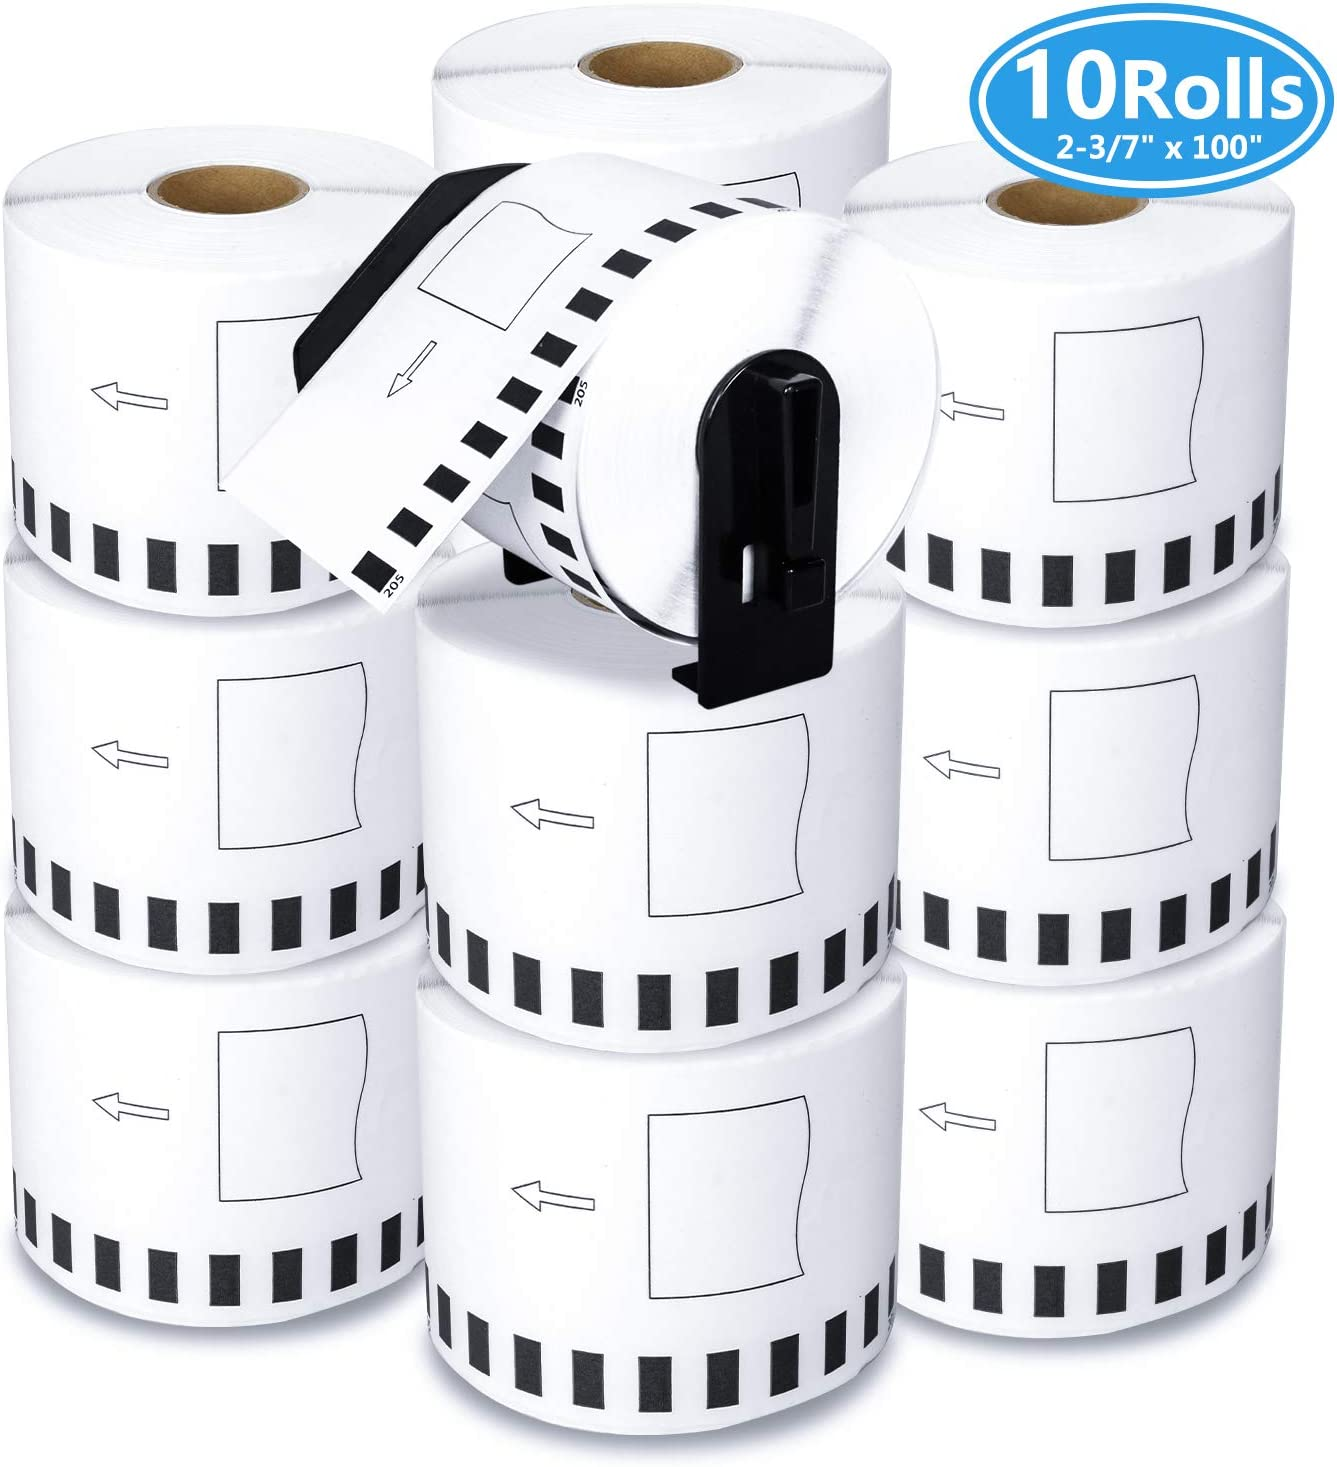 "10 Rolls Compatible Brother DK-2205 Continuous Paper Tape Labels Roll, Cut-to-Length Label, 2.4"" x 100 Feet with Refillable Cartridge for Brother QL-500 QL-580 QL-700 QL-800 Laebl Printer etc. 71UHny9v8JL"